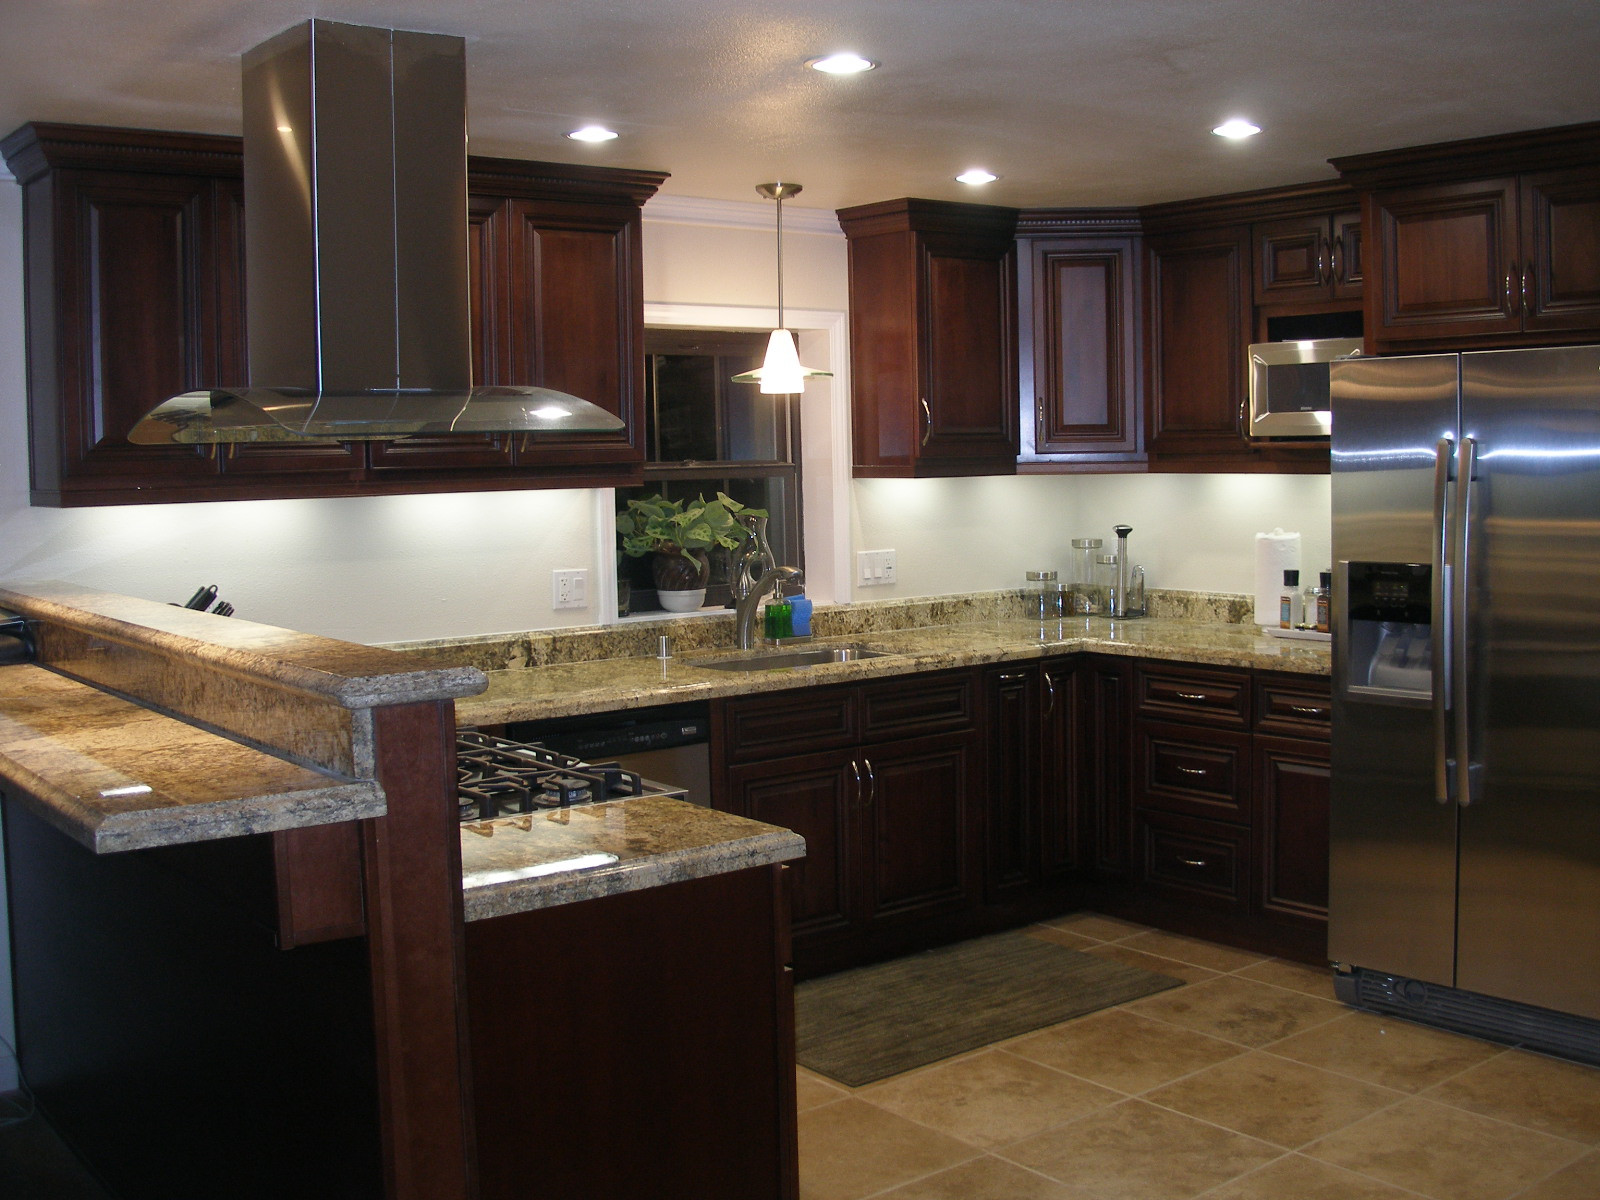 Kitchen remodel bay easy construction for Kitchen ideas renovation